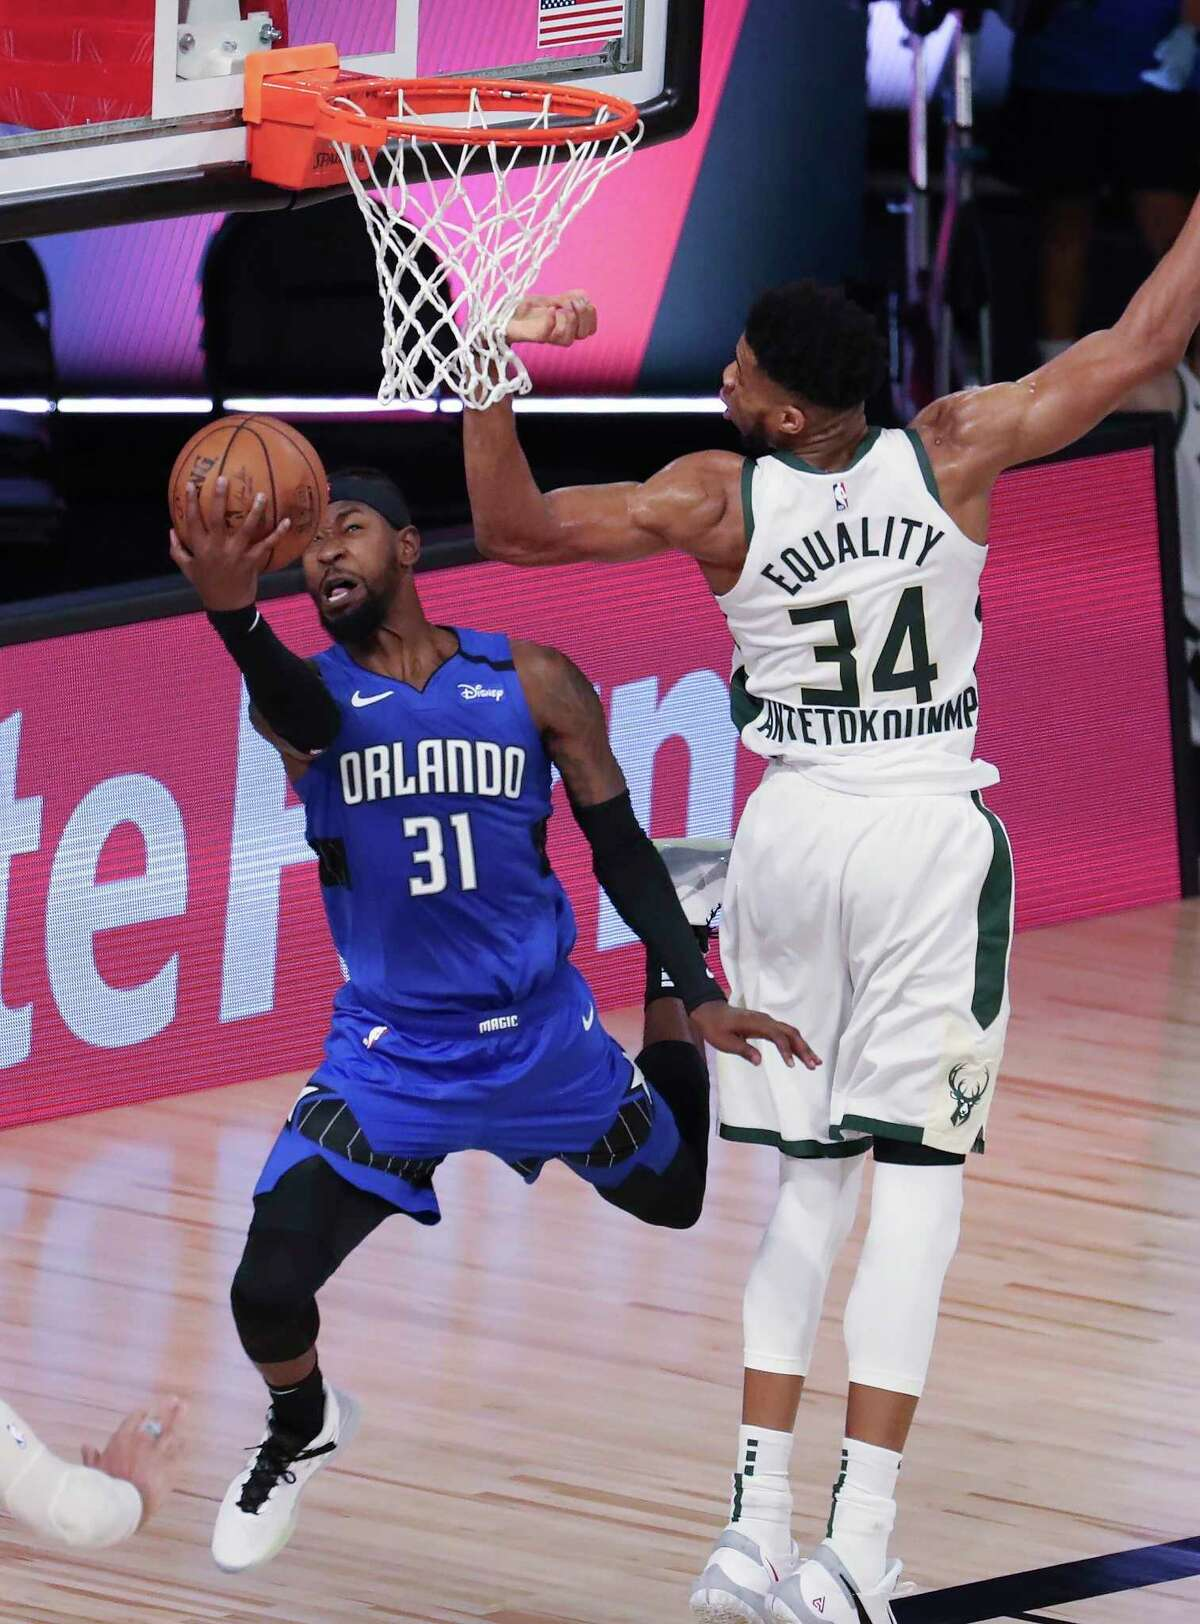 Orlando guard Terrence Ross (31) attempts a reverse lay-up against Milwaukee forward Giannis Antetokounmpo (34) during in Game 1 of an NBA basketball first-round playoff series, Tuesday, Aug. 18, 2020, in Lake Buena Vista, Fla. (Charles King/Orlando Sentinel via AP)